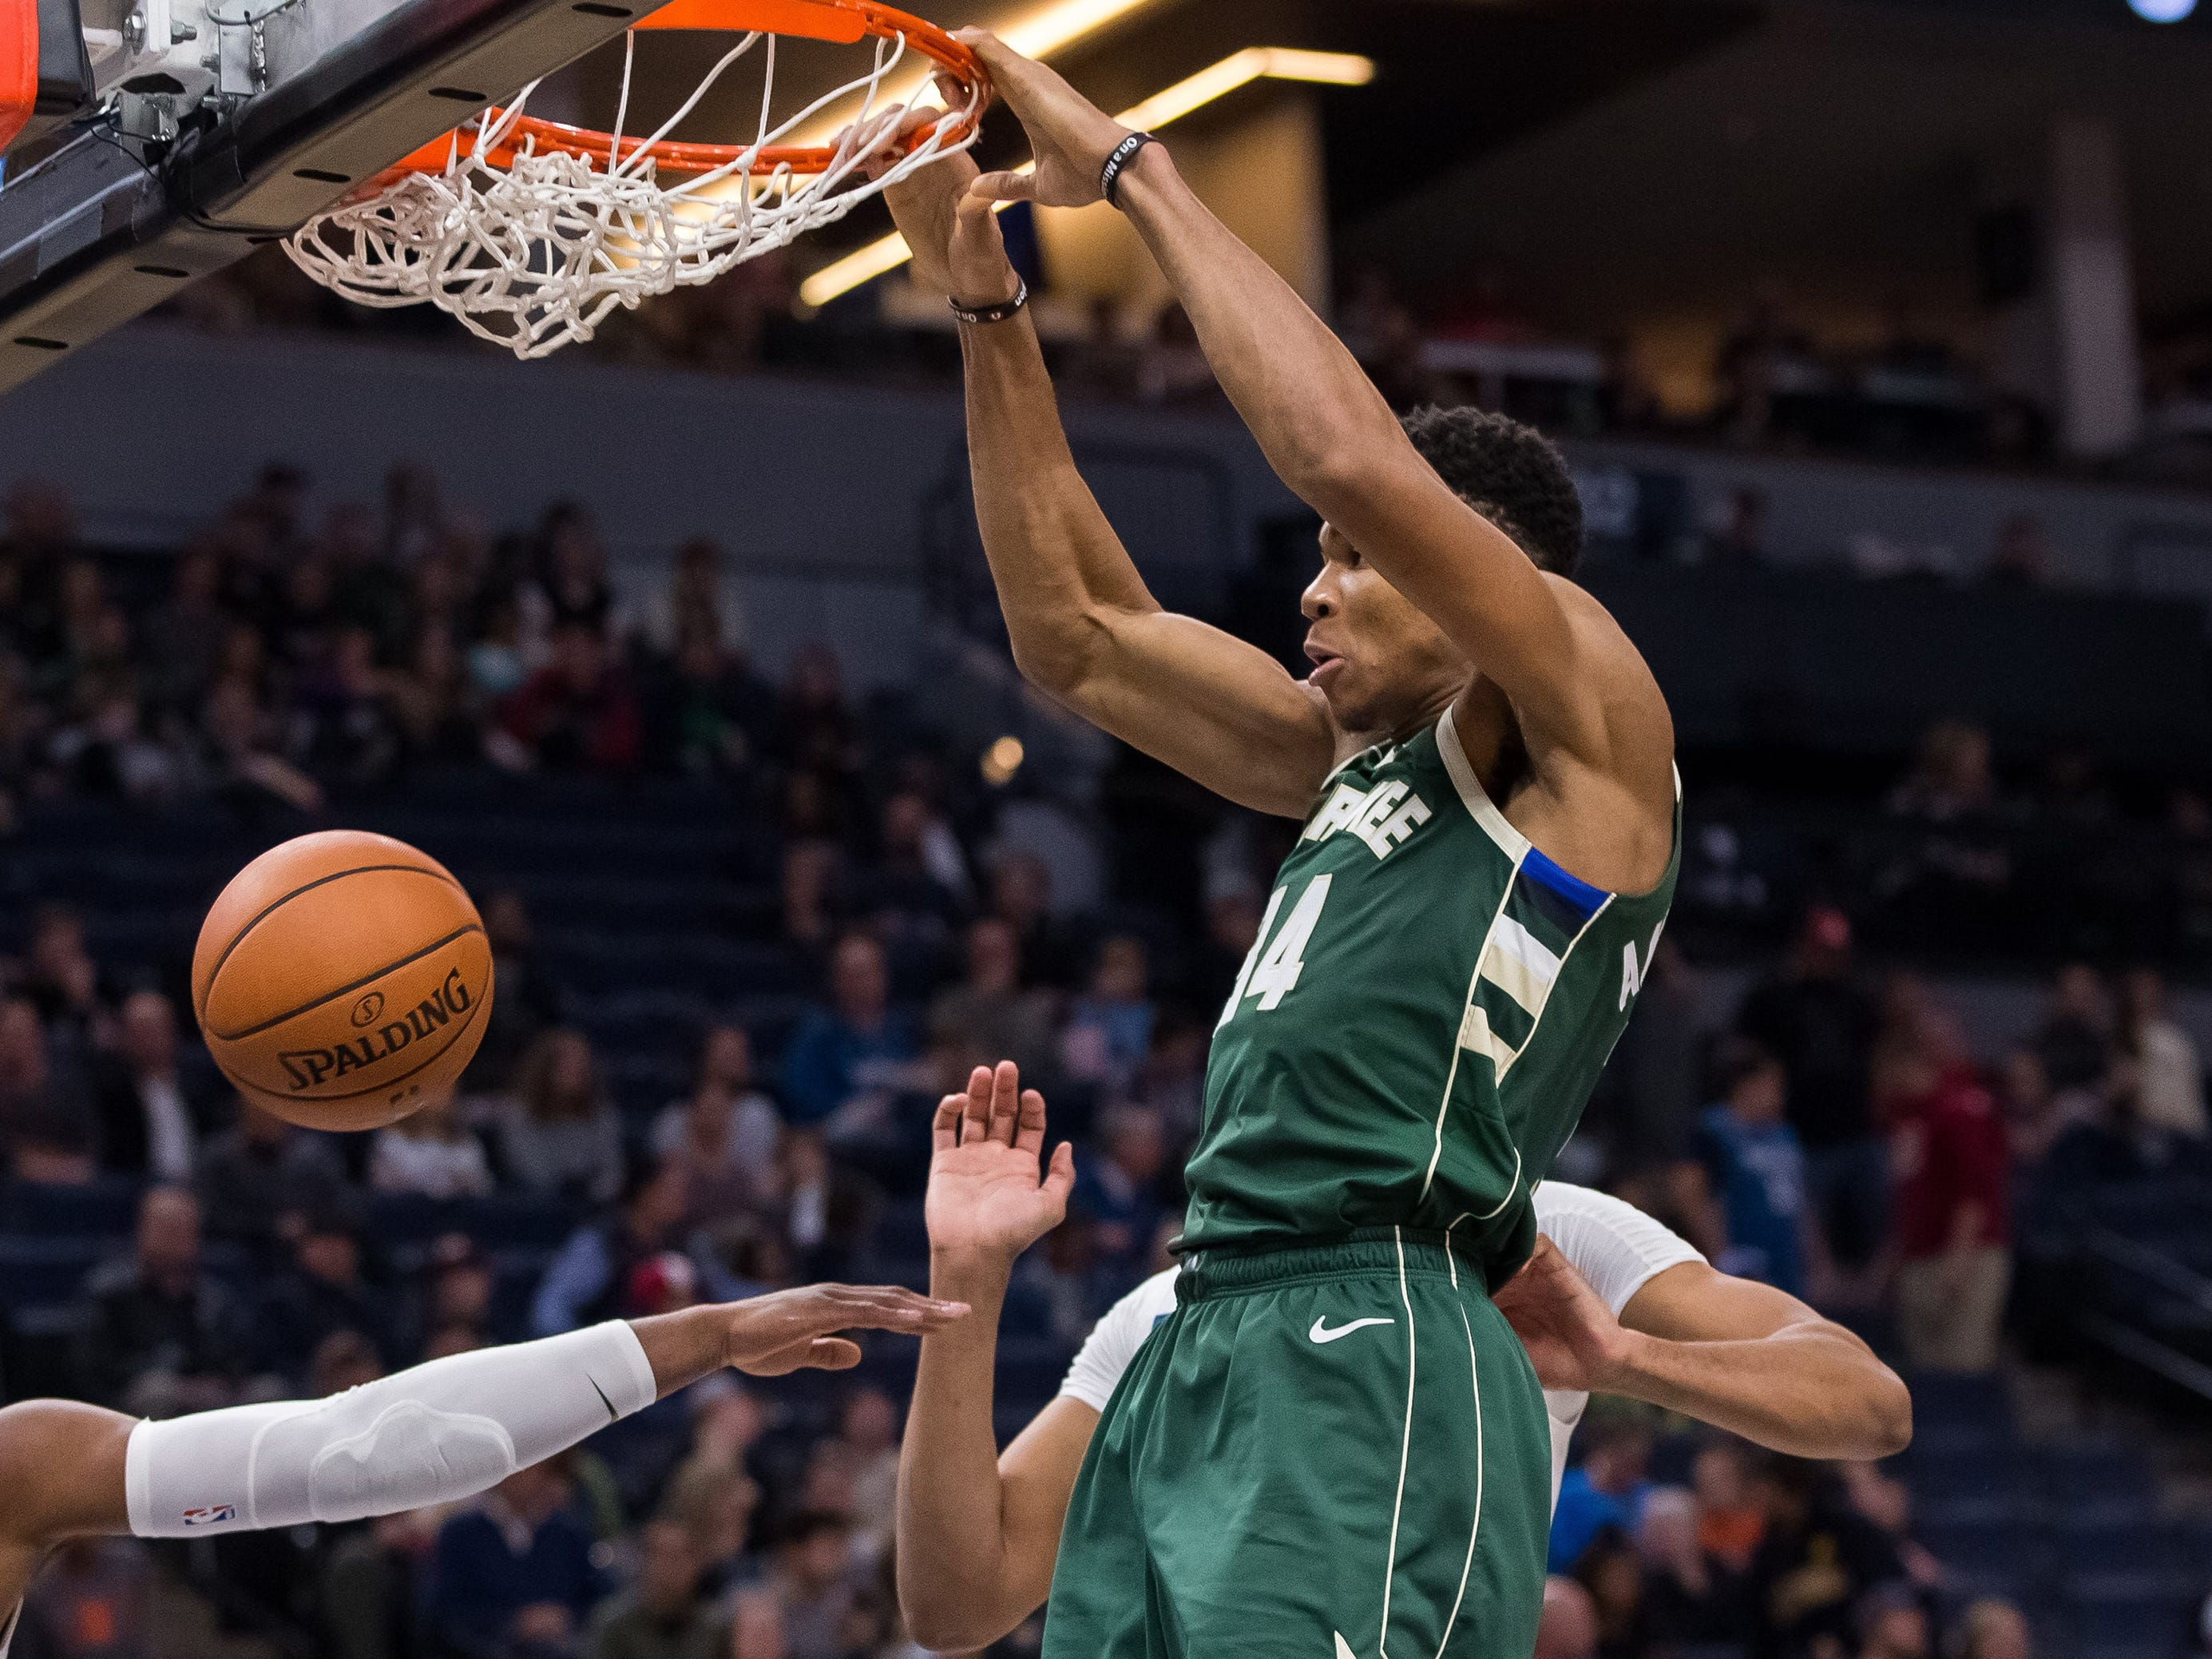 Oct. 26: Bucks forward Giannis Antetokounmpo throws down a monster two-handed slam during the second half against the Timberwolves in Minneapolis.